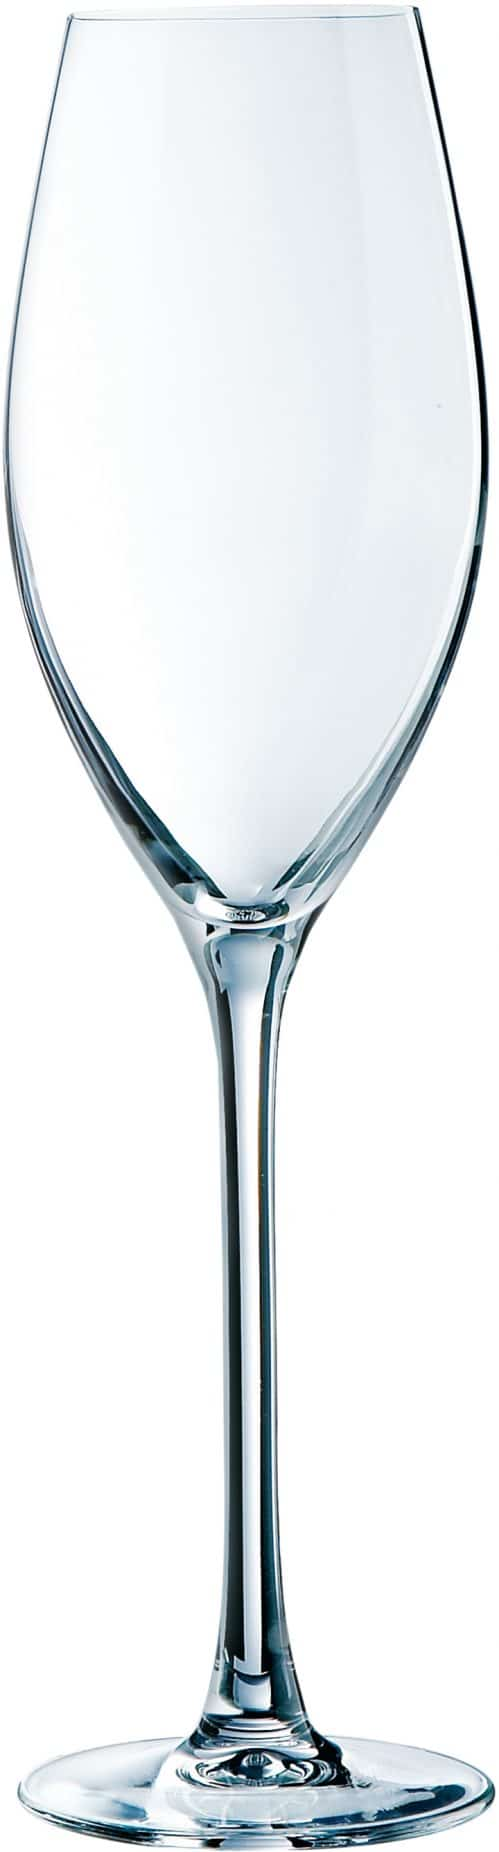 Grand Cepage Champagneglas 24Cl (Set Van 6)